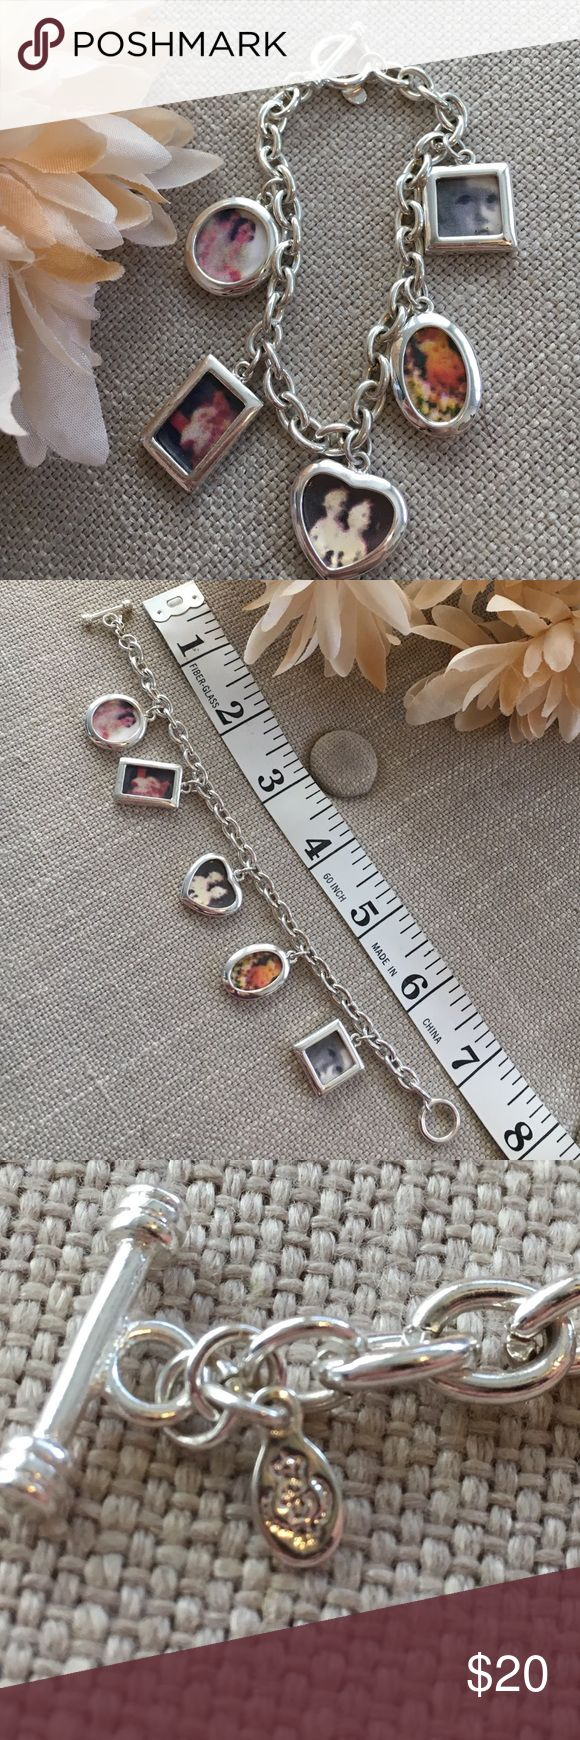 Vintage Silver Pictures Charm Bracelet This lovely Vintage Pictures Charm Bracelet is silver tone and includes space on charms for you personalize with 5 photos. Not sure if the brand but I took a photo of the tag with the stamp, also not sure of the metal although it's on the heavier side. Bracelet was my Mom's, she's had it for years, received it as a gift and never wore it. Offers welcome! Photos easily slide in back, see pic. Vintage Jewelry Bracelets